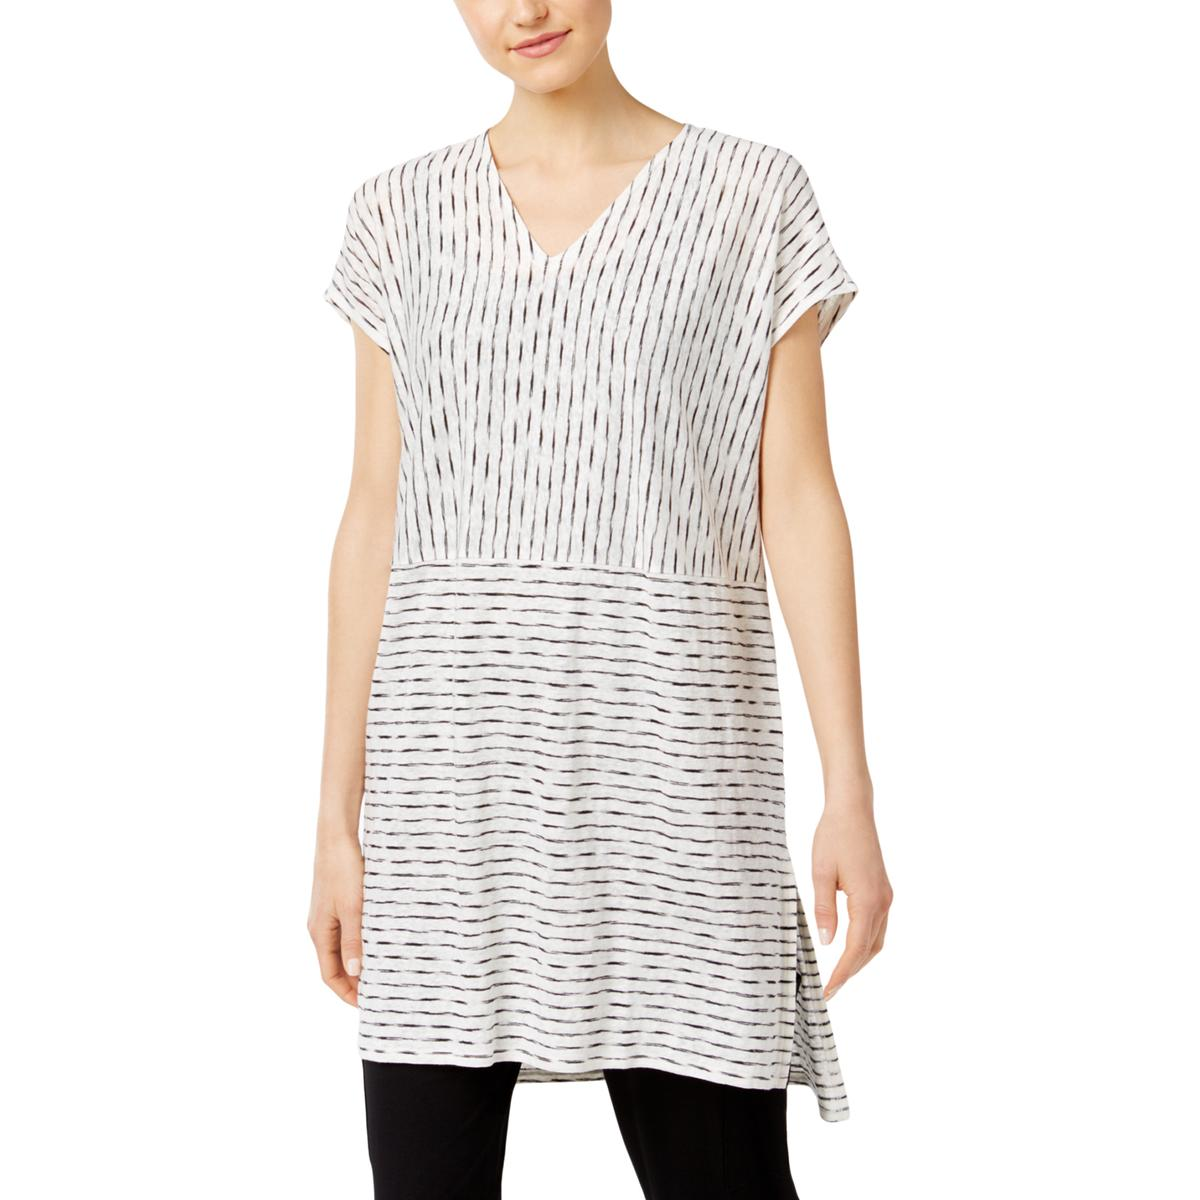 ce51b1a646114 Details about Eileen Fisher Womens B W Linen Hi-Low Tunic Top Blouse Petites  PL BHFO 4295